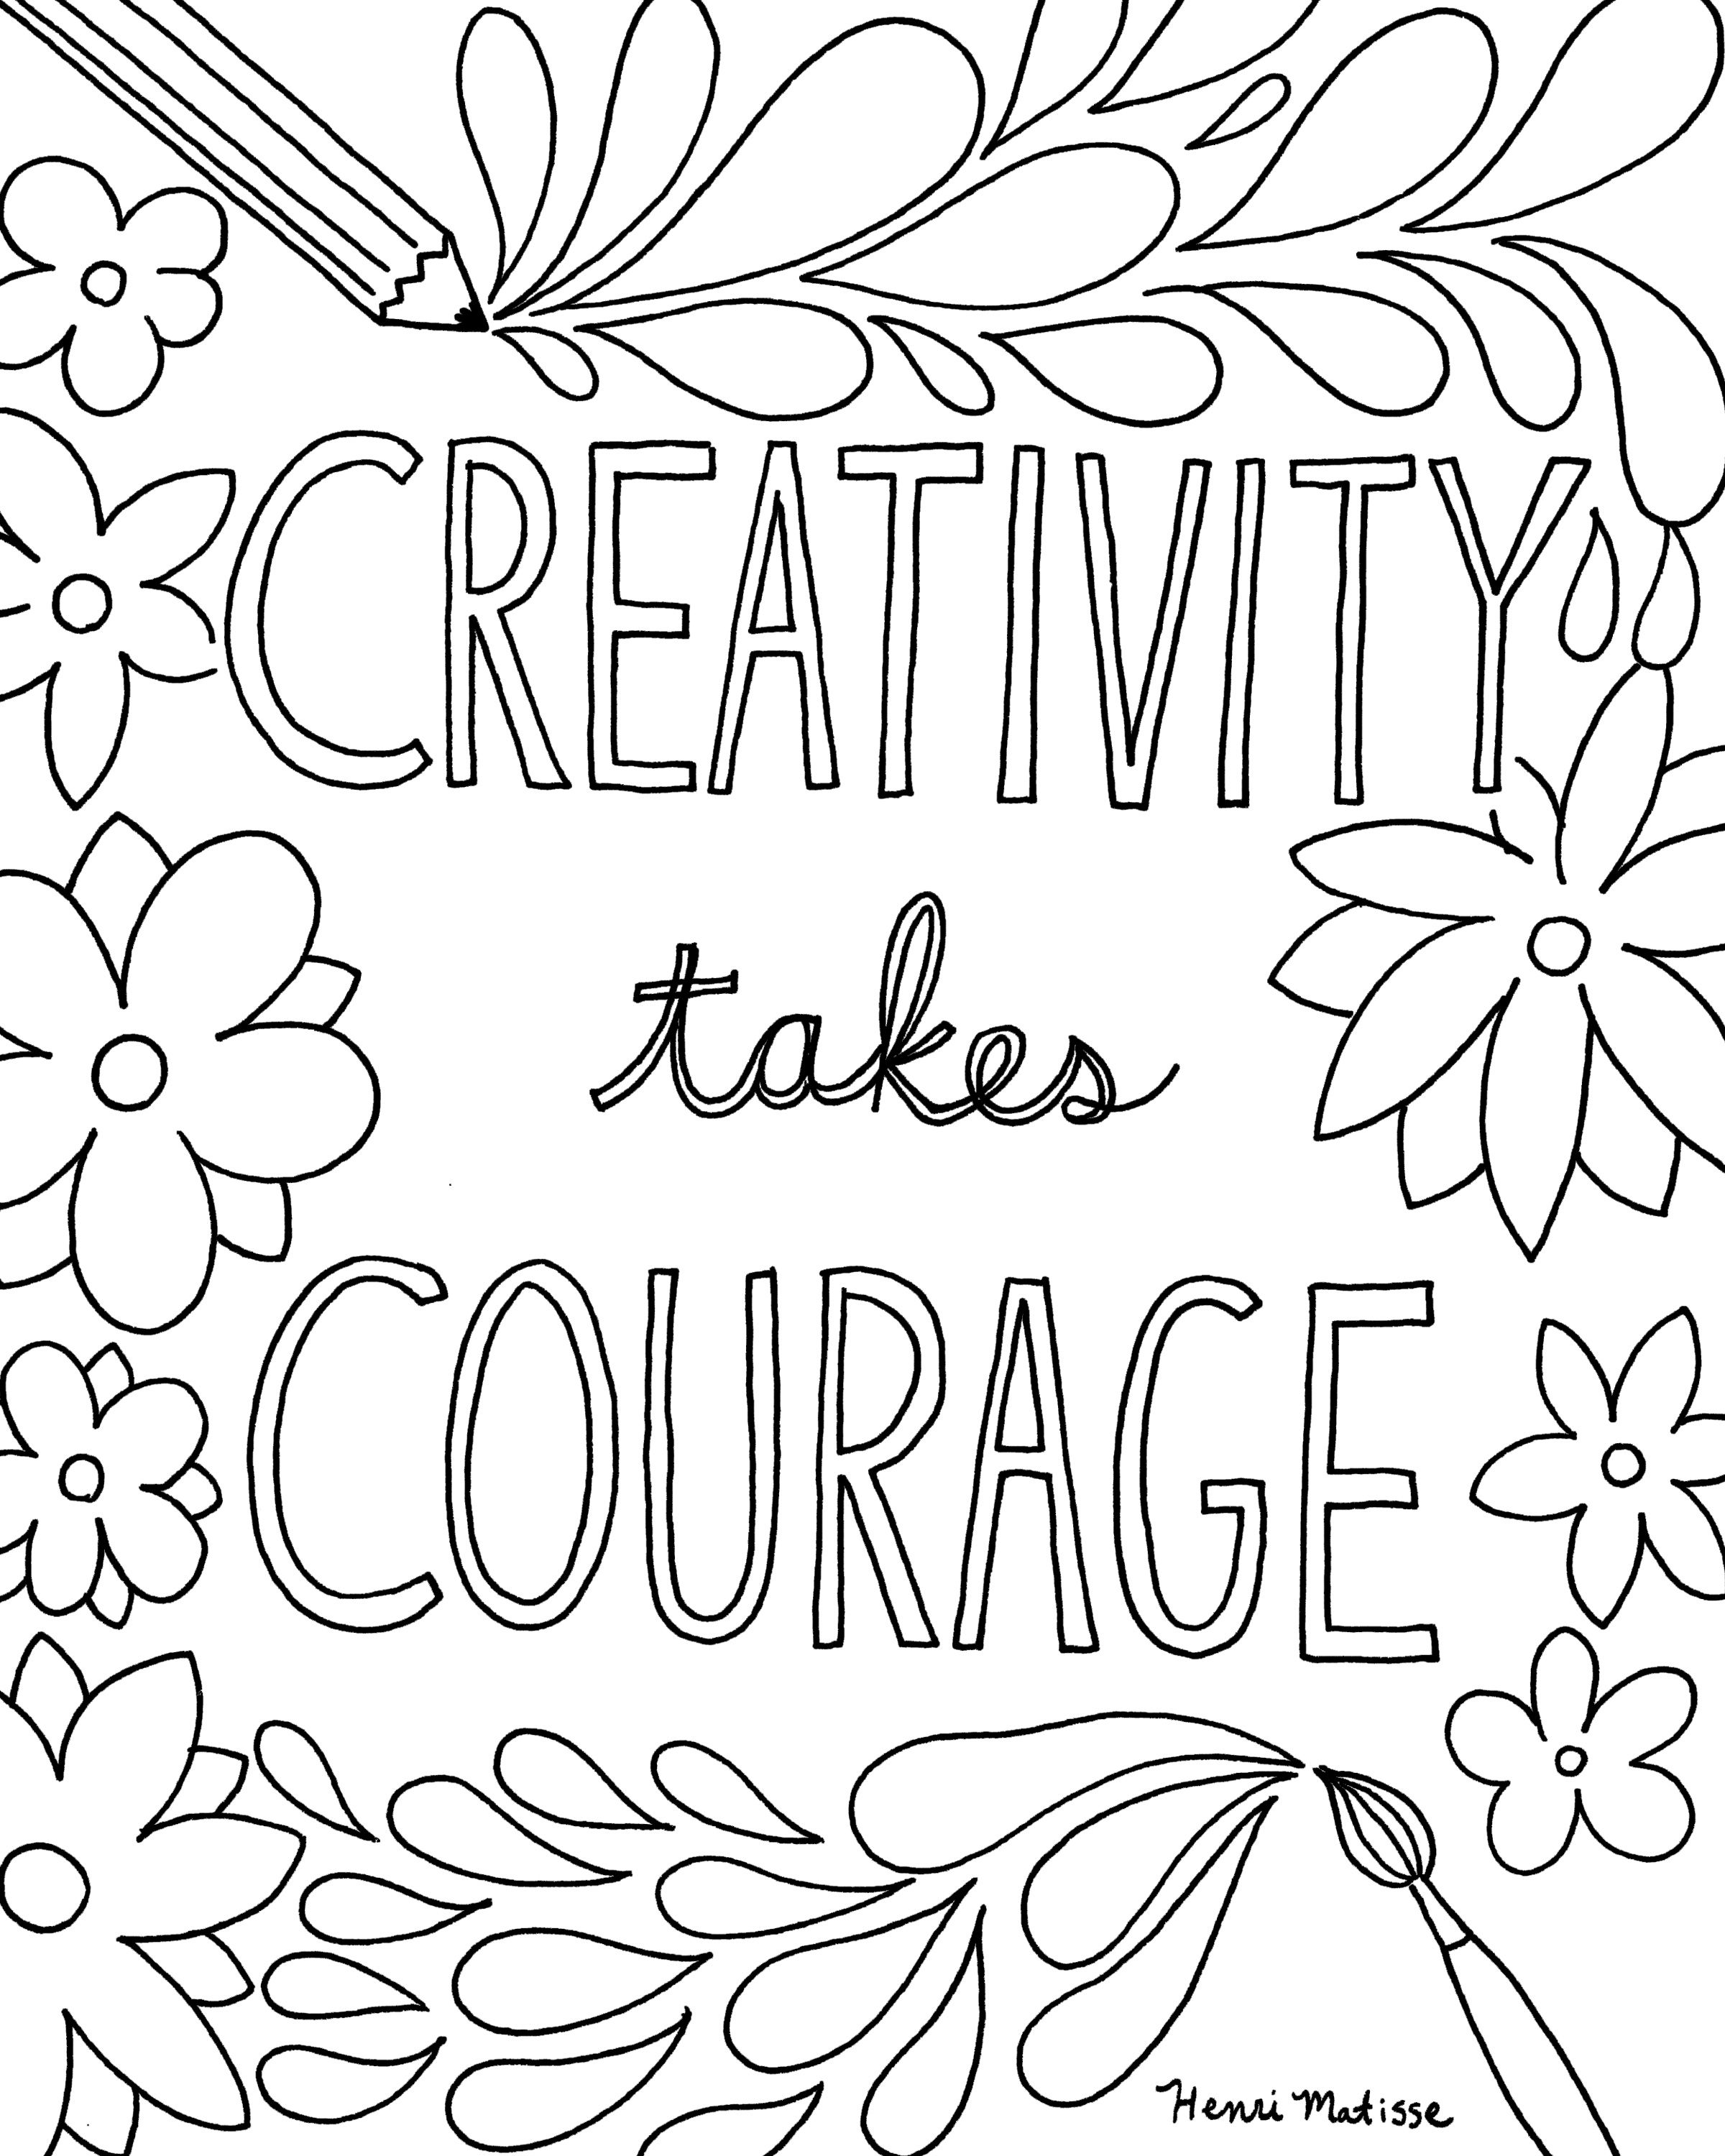 Free Printable Quote Coloring Pages for Grown-Ups | Quote coloring ...